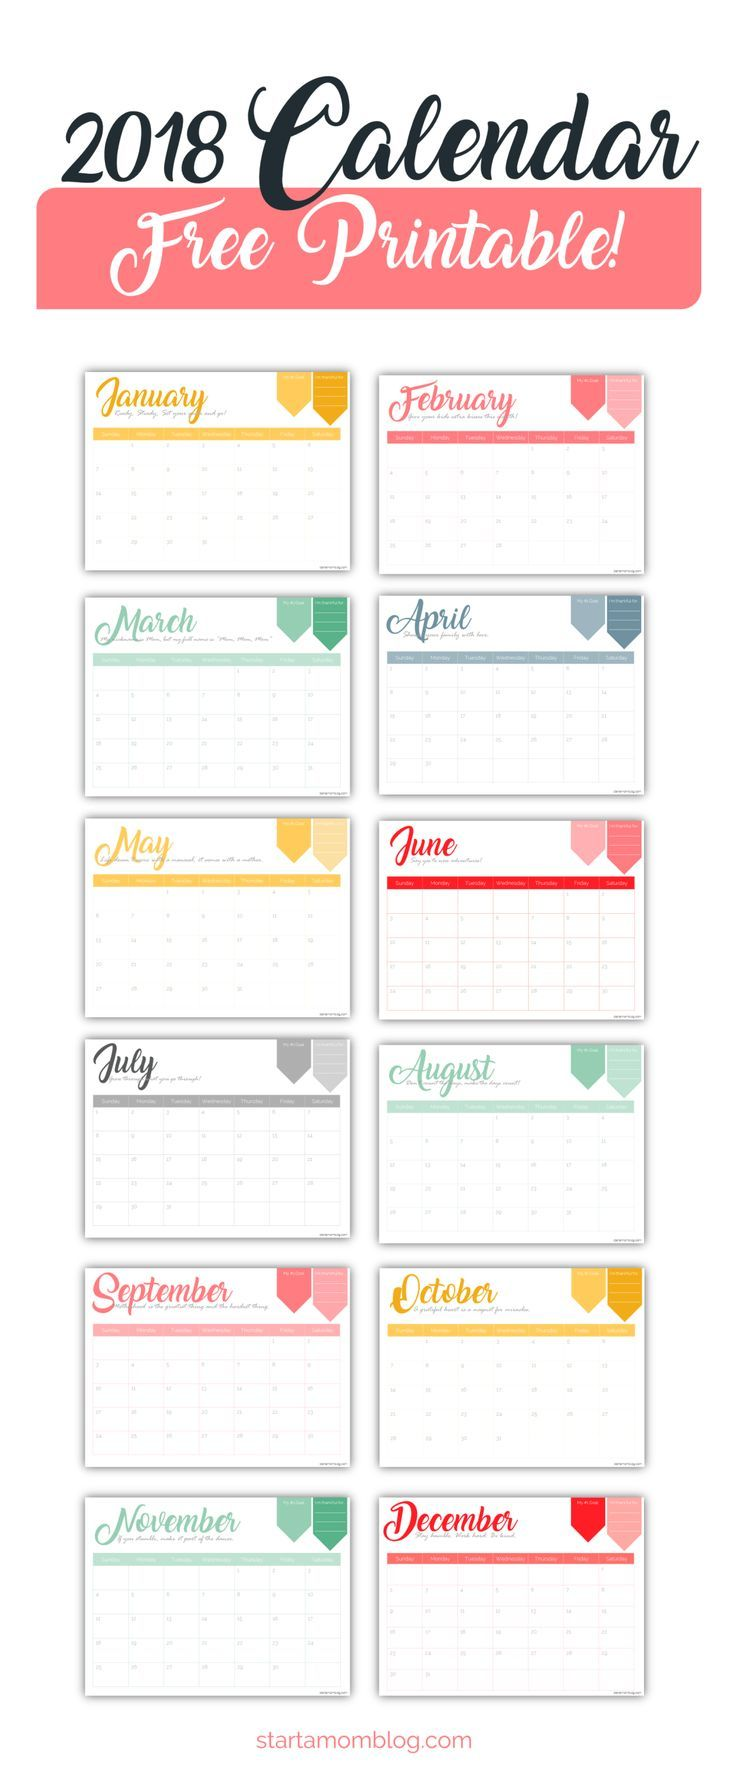 2018 Free Calendar Printable with Inspirational Quotes for Moms